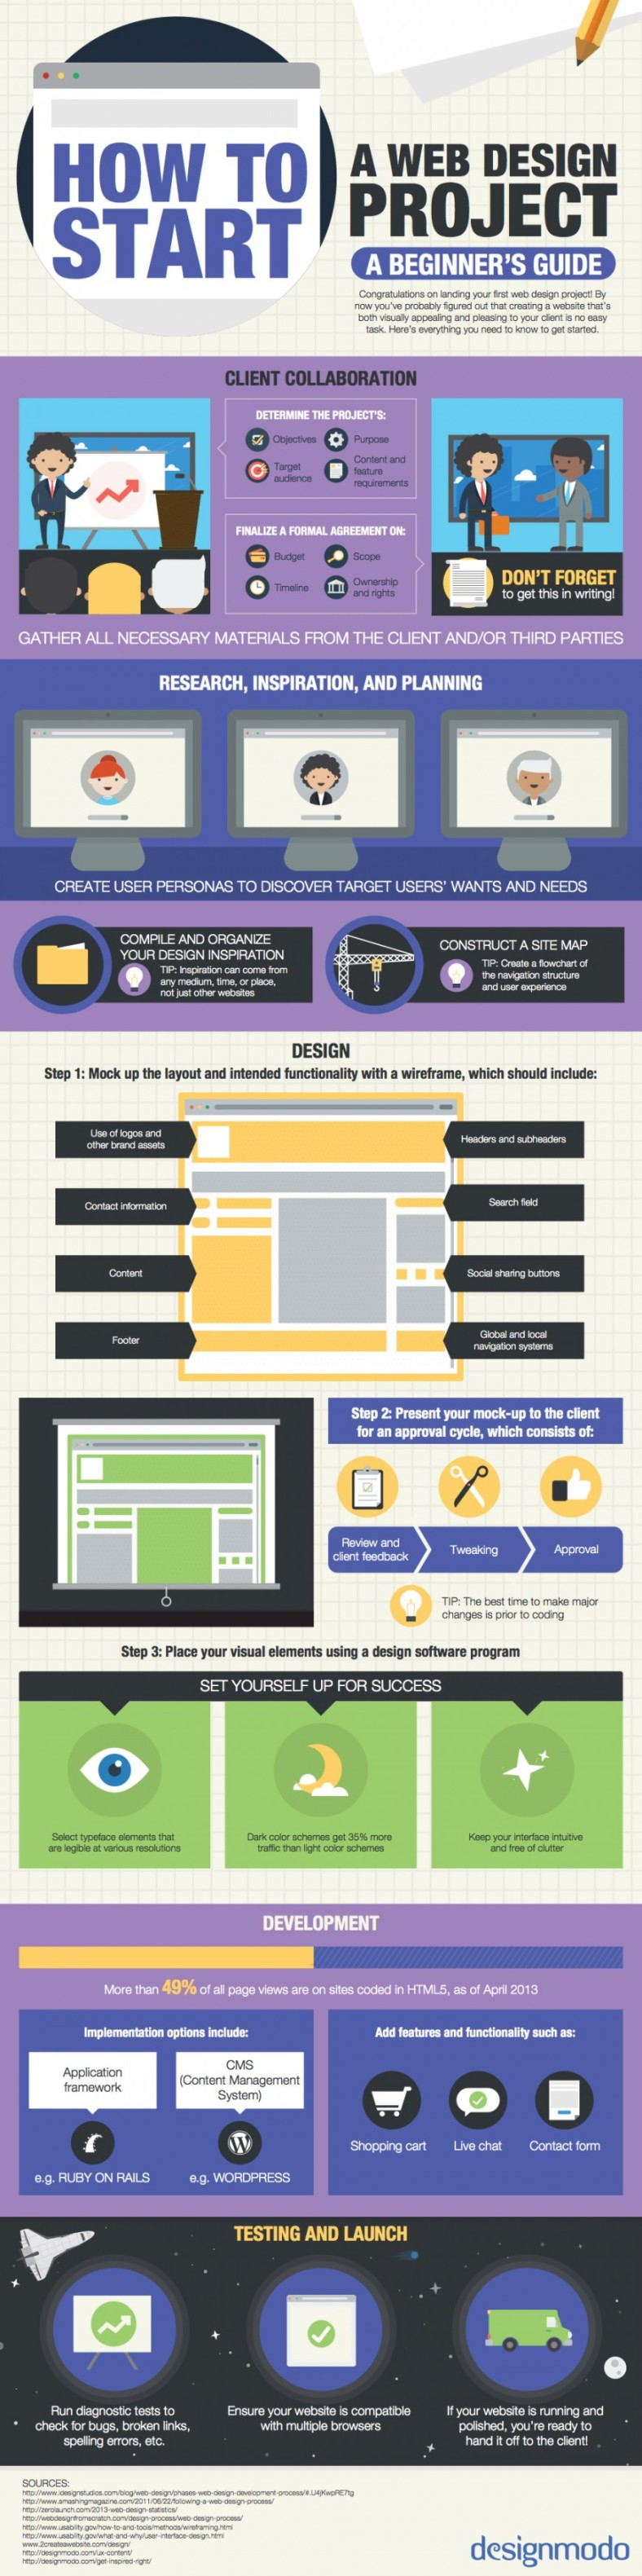 How-To-Web-Design